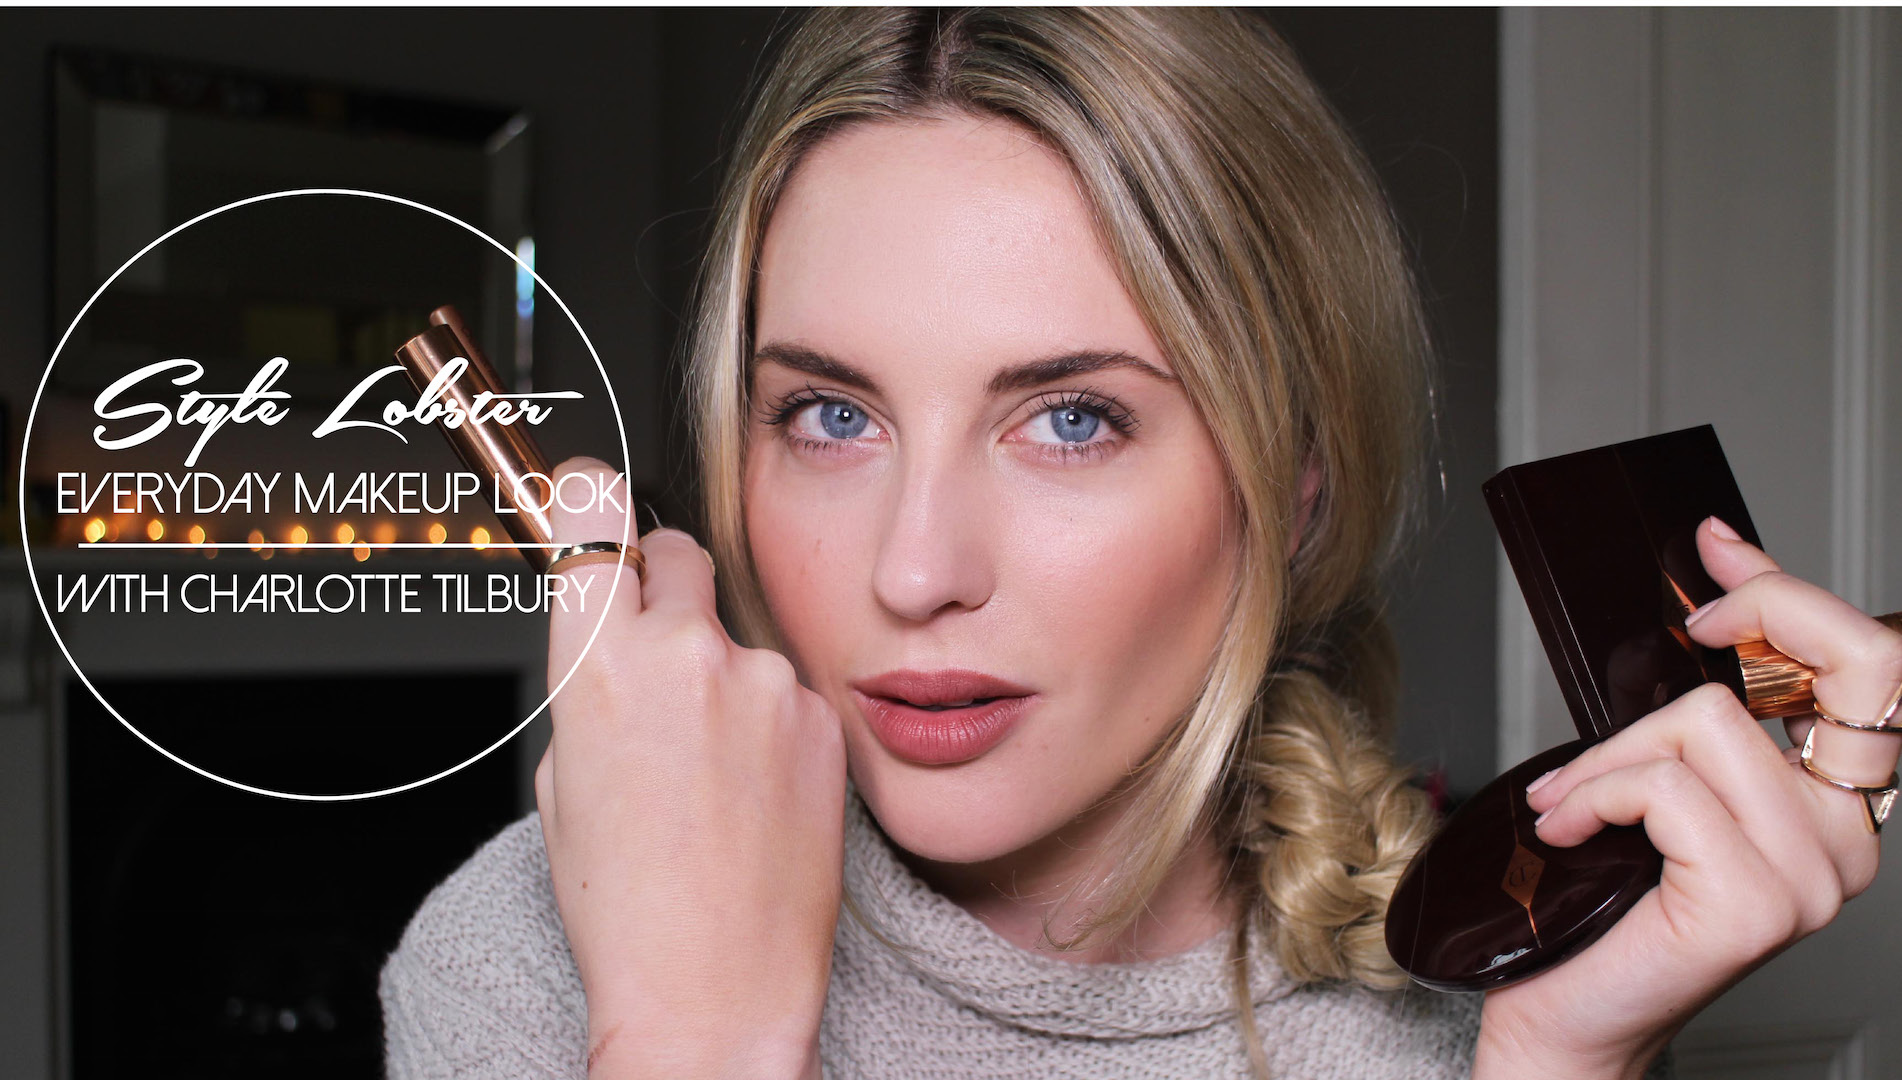 HOW TO EVERYDAY MAKEUP LOOK WITH CHARLOTTE TILBURY MAKEUP